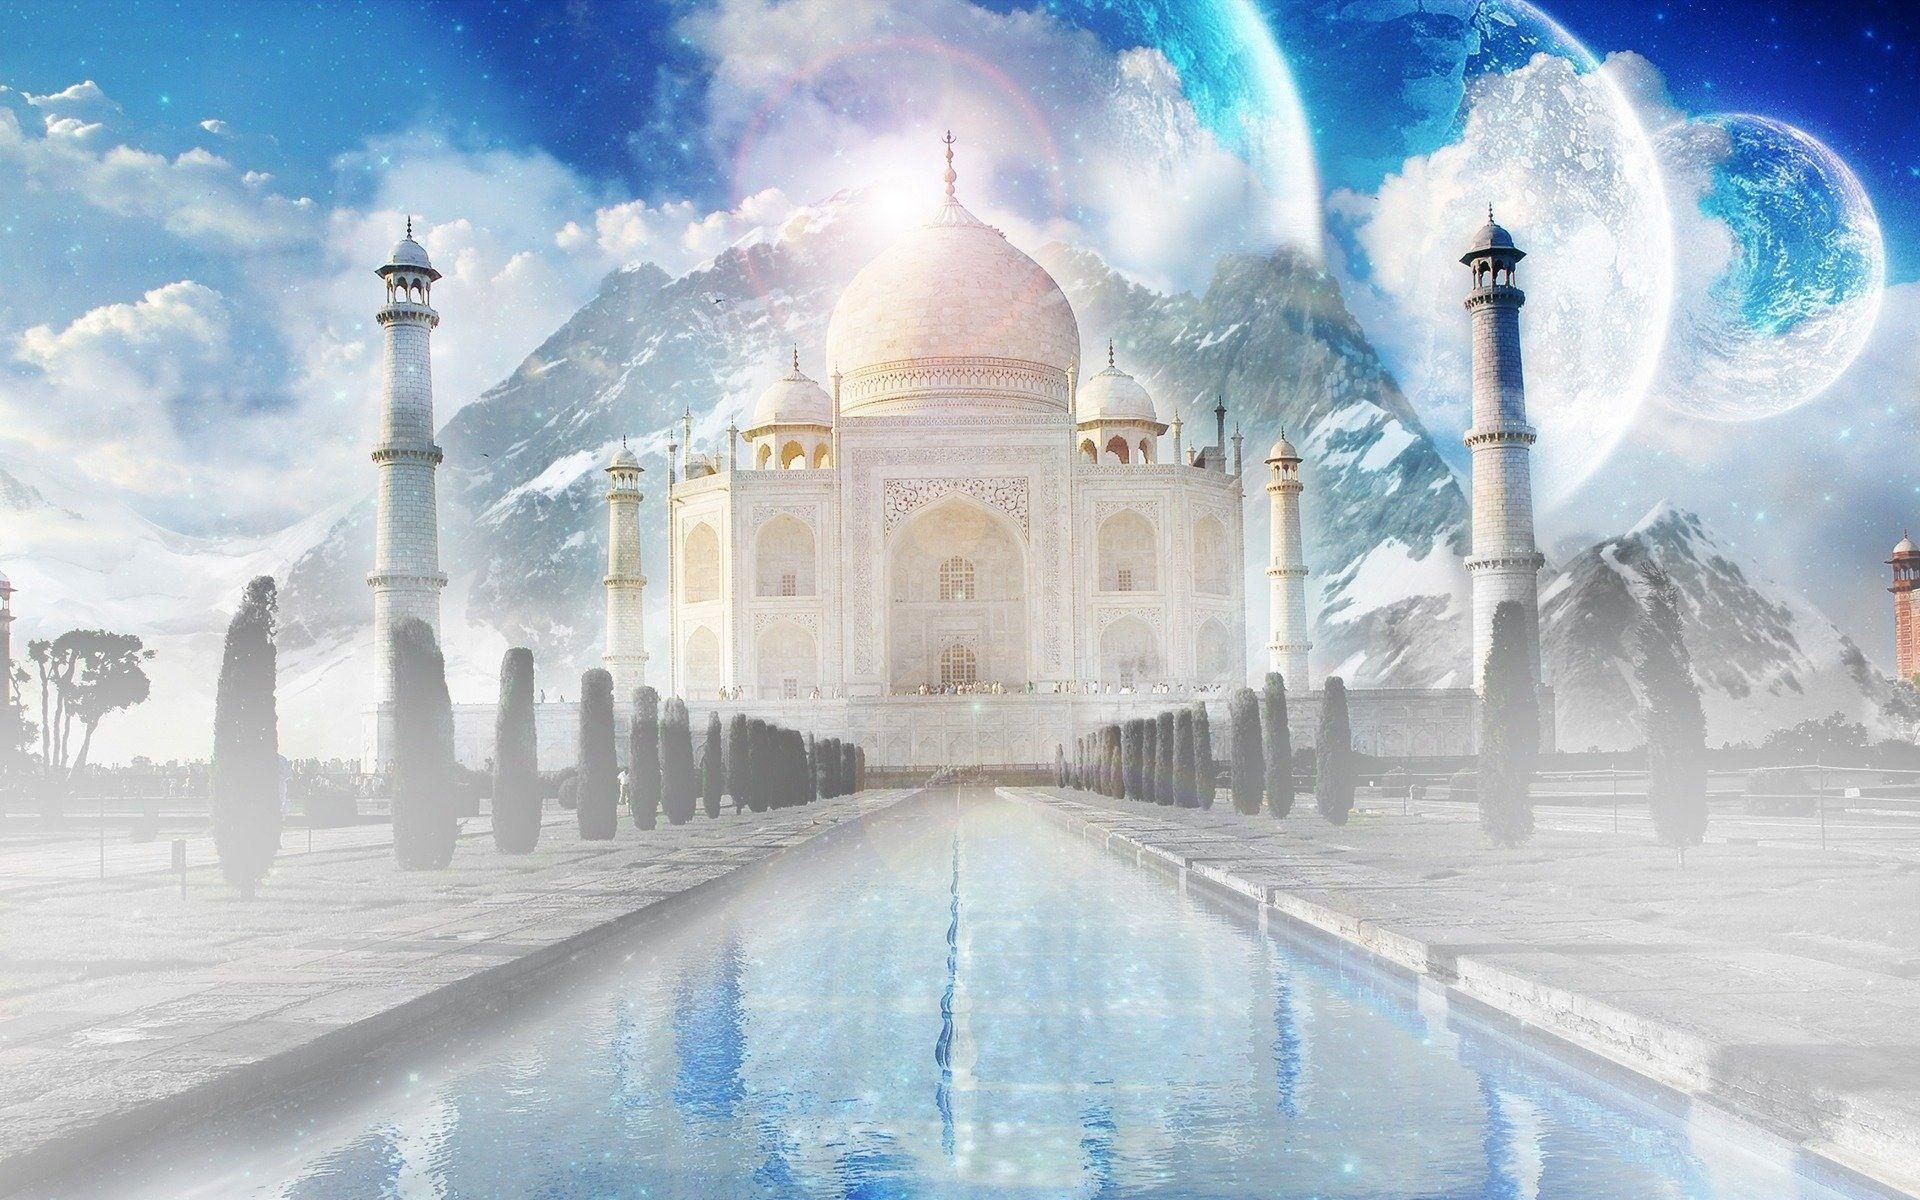 Hd wallpaper taj mahal - Taj Mahal High Qulaity Hd Wallpapers Free Wallpapers